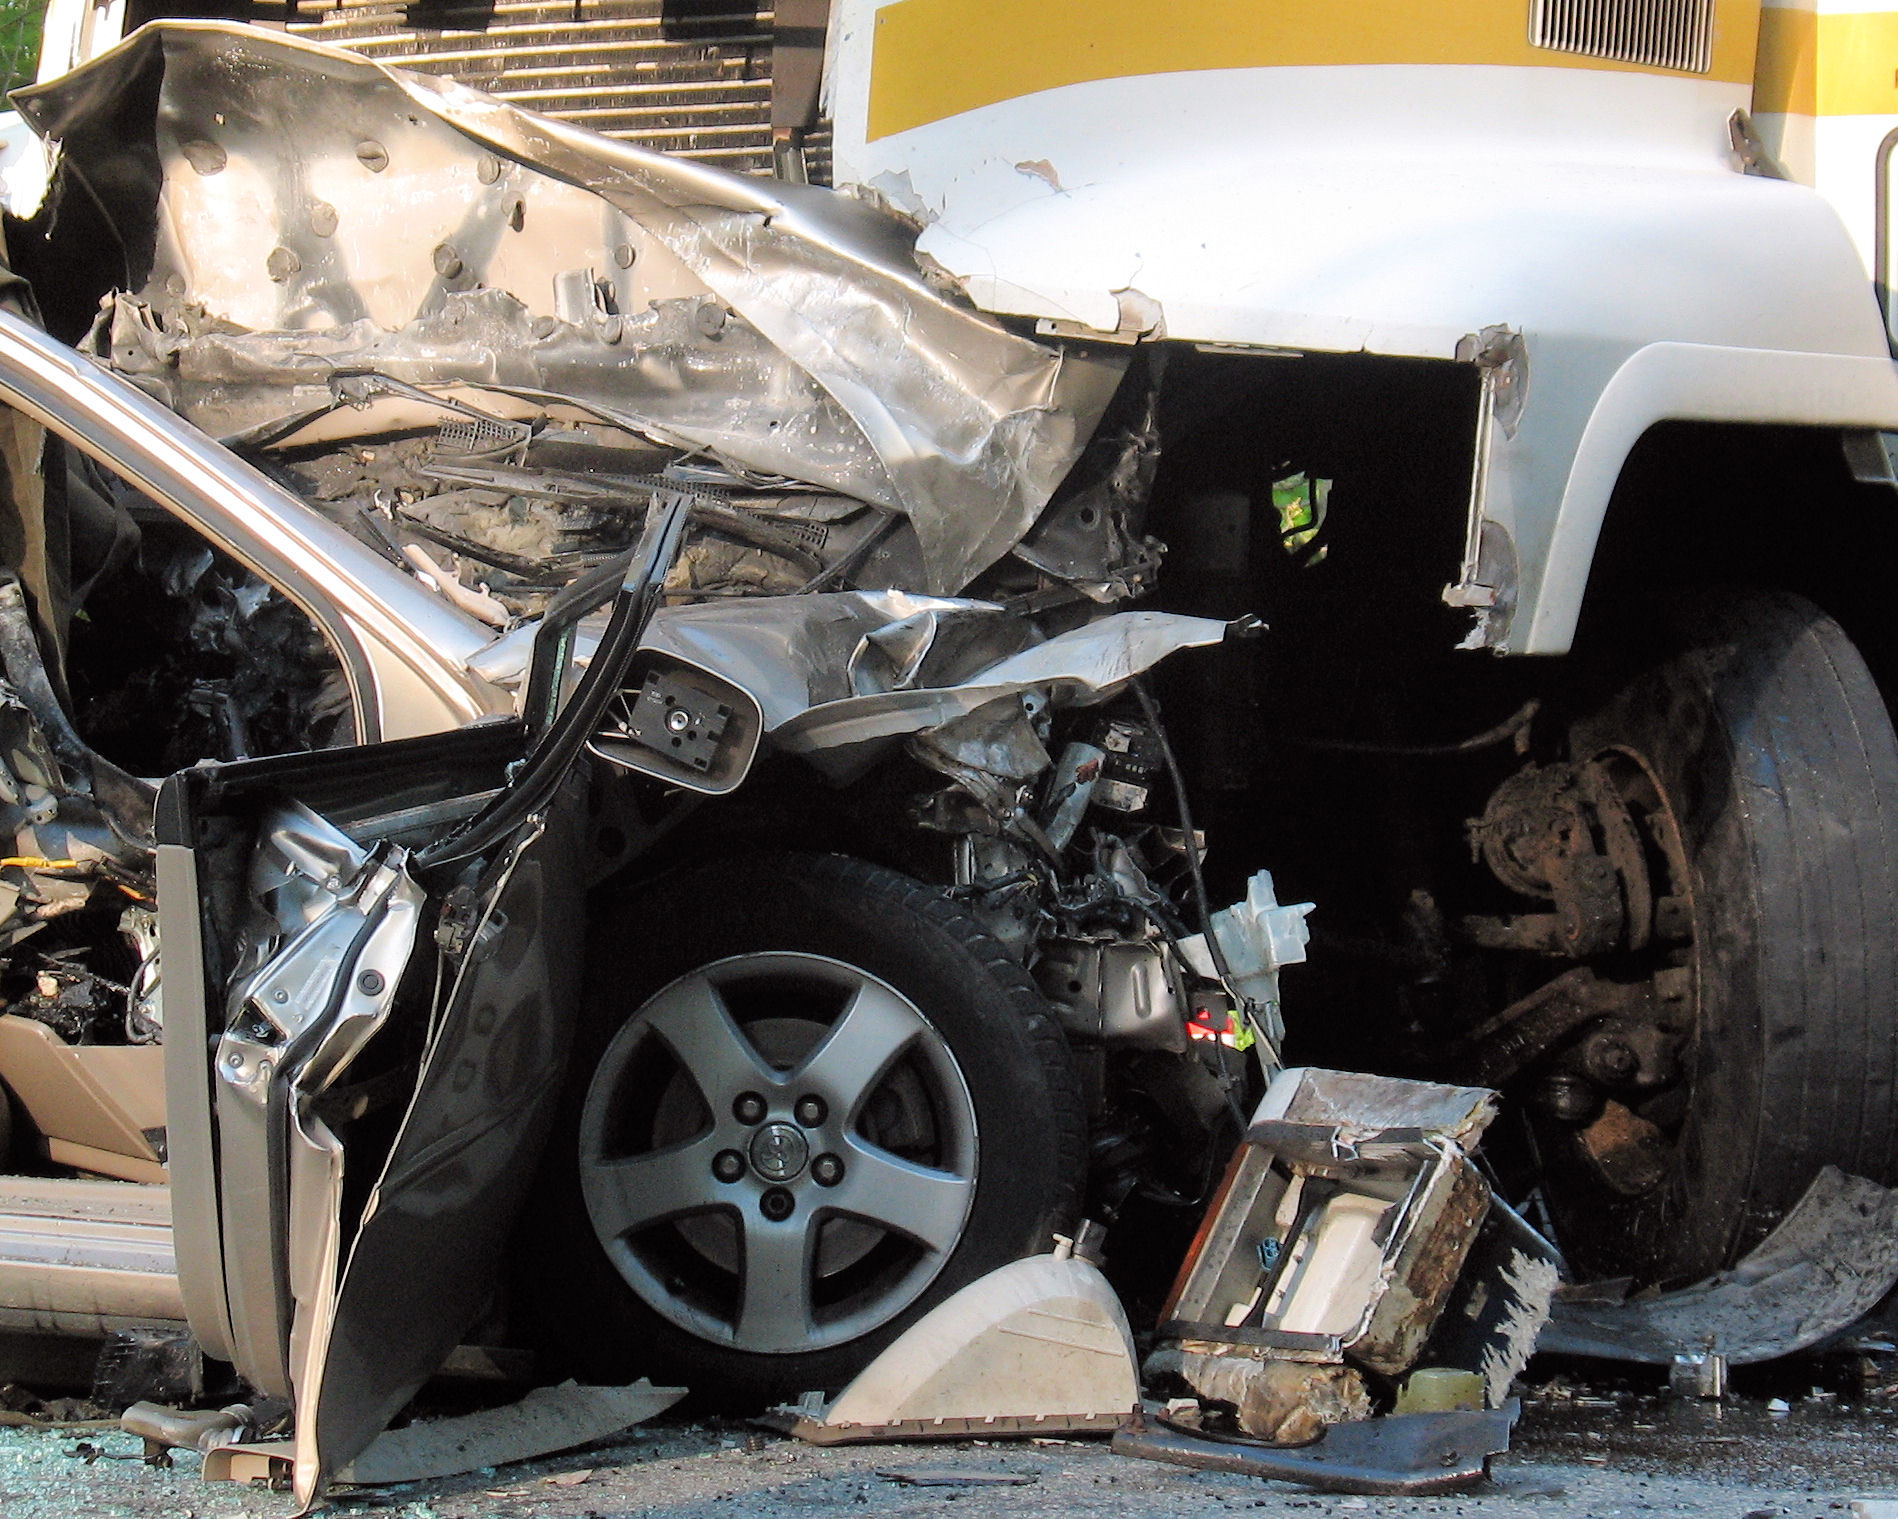 Harsher penalties for truck driver fatigue leading to crashes in